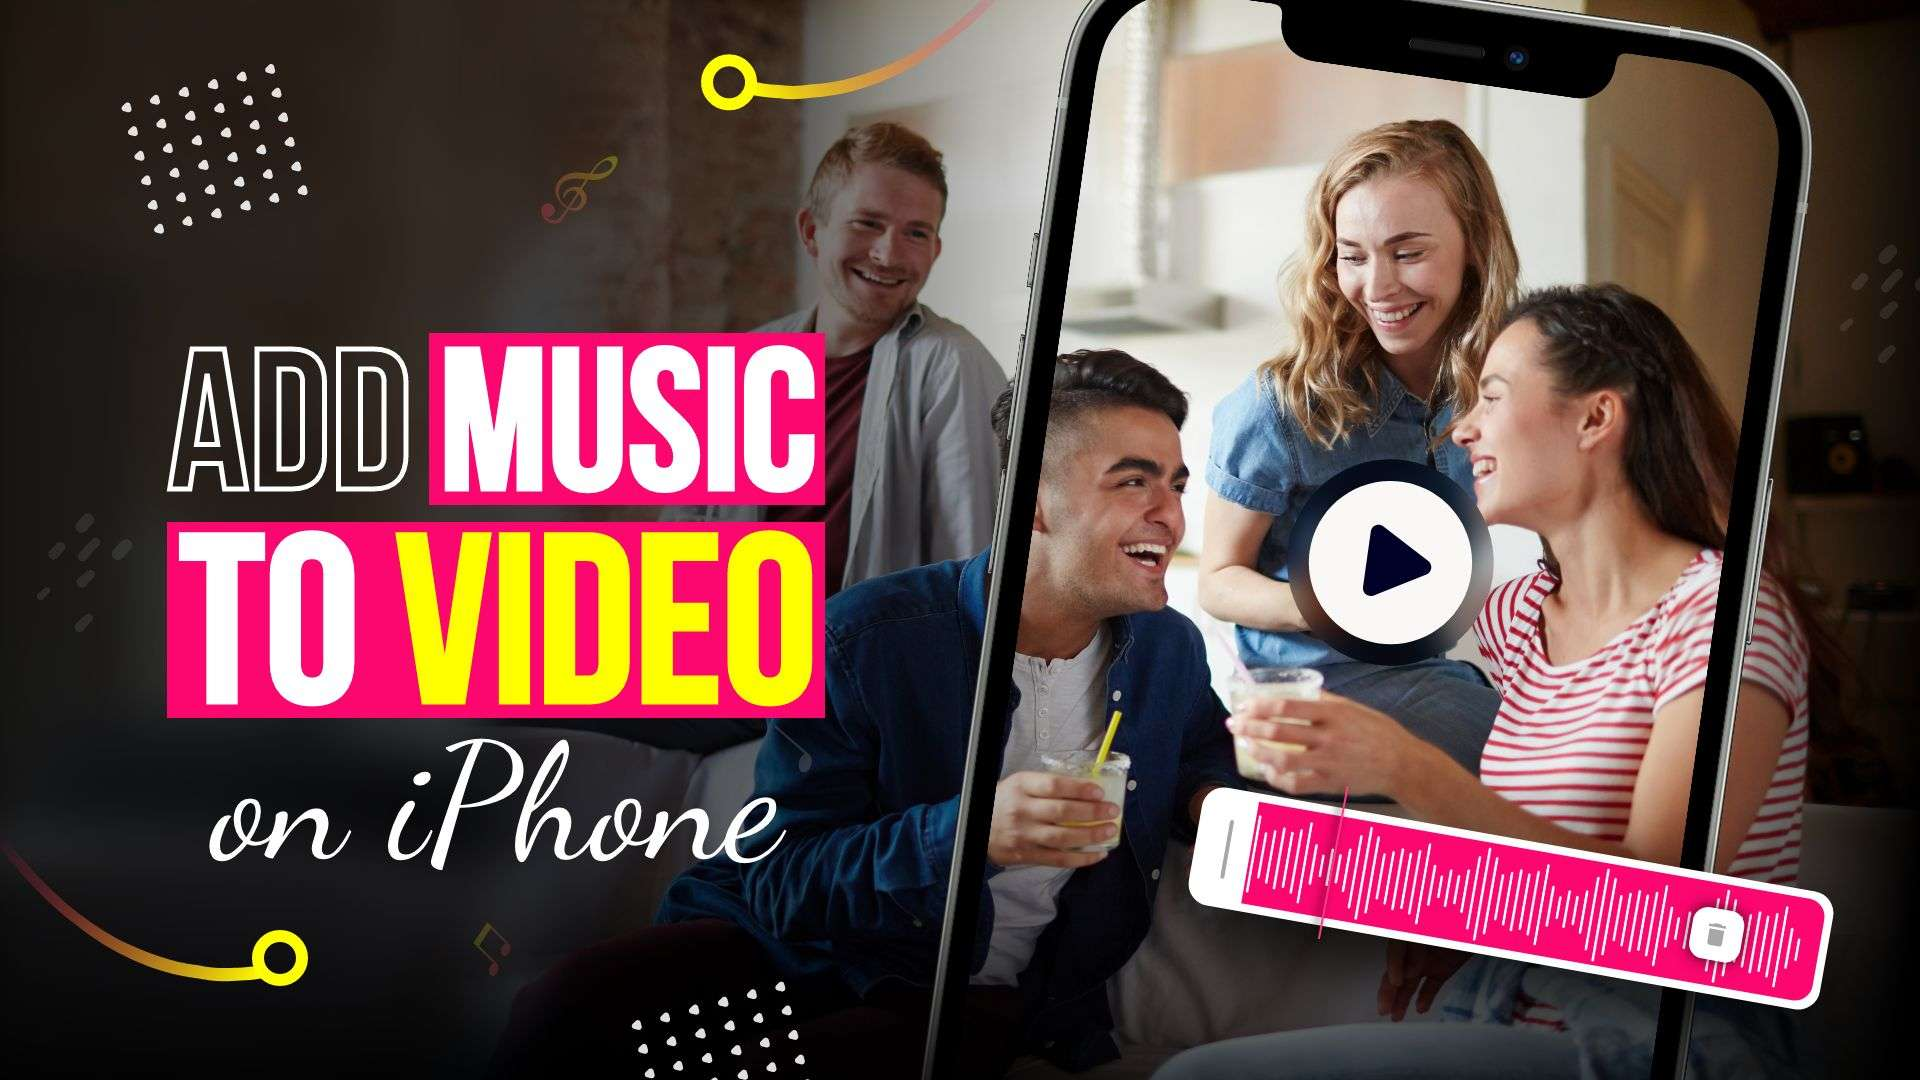 How to add music to a video on iPhone